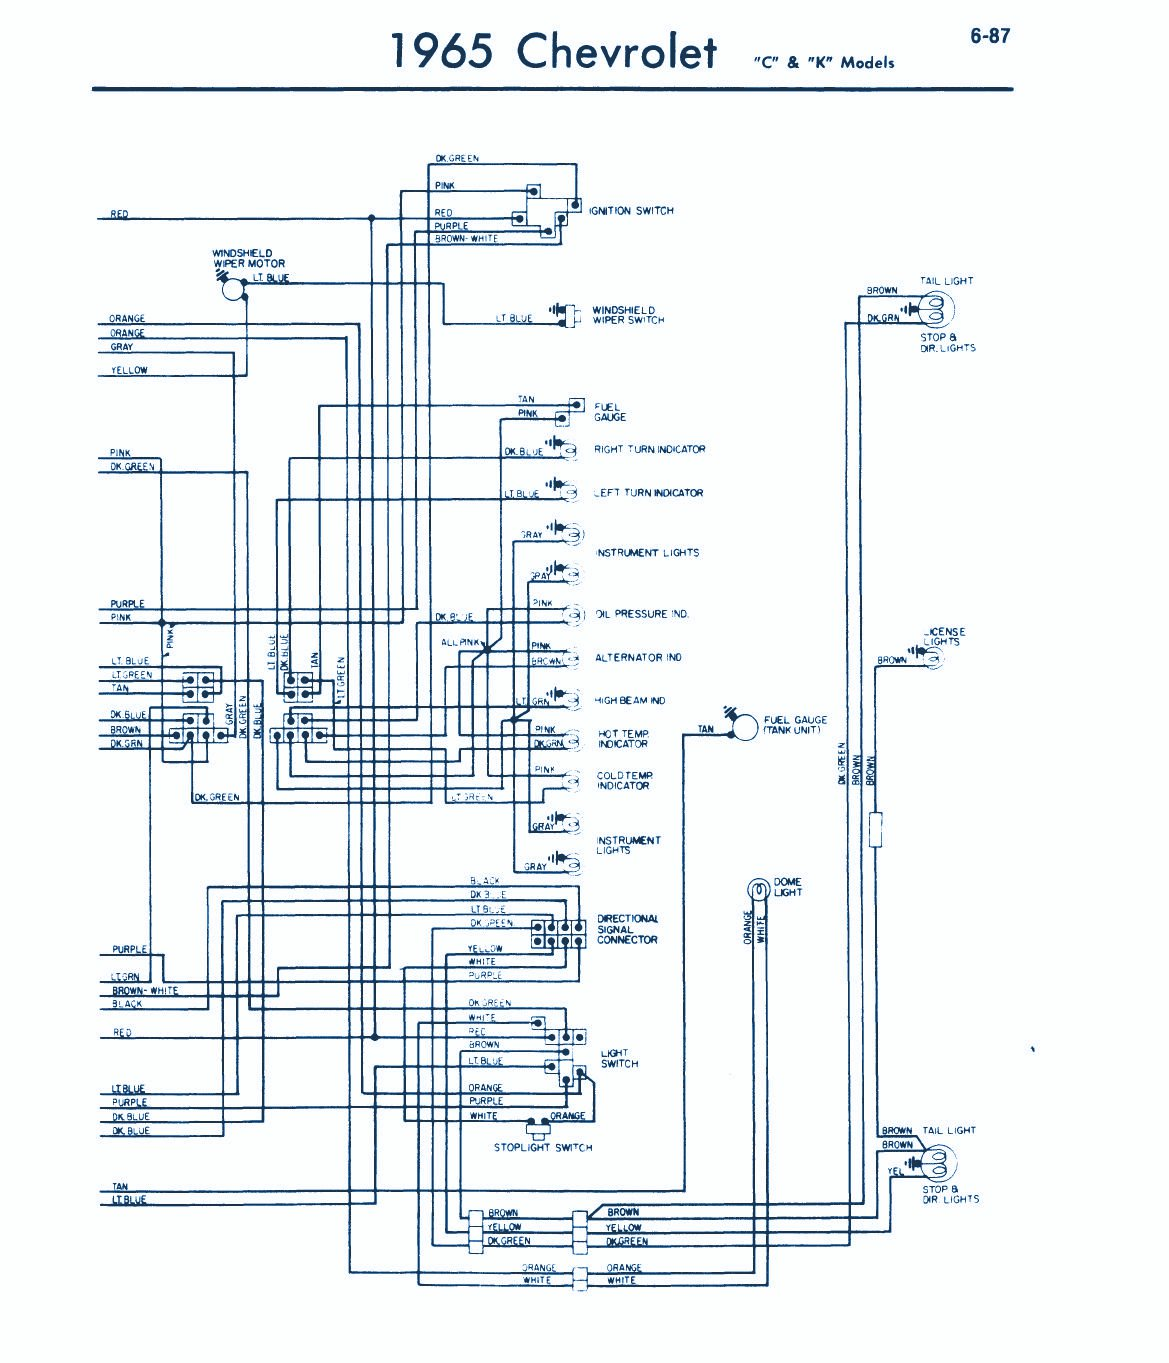 1967 camaro ignition switch wiring diagram